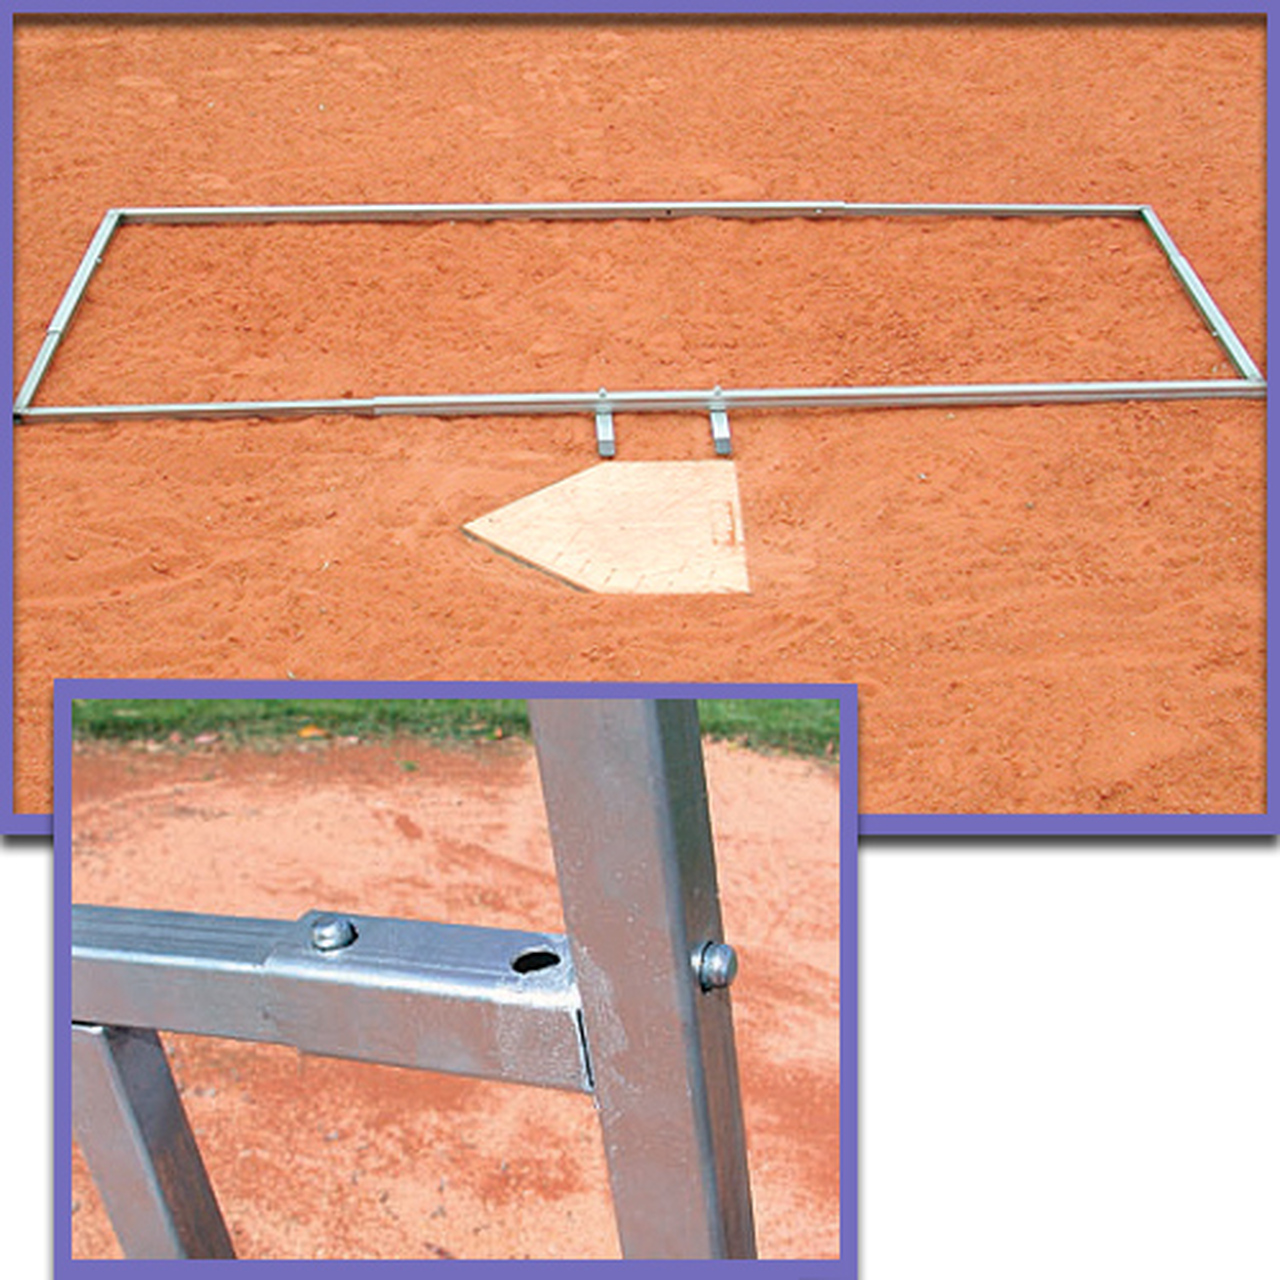 Baseball batter's box adjustable template